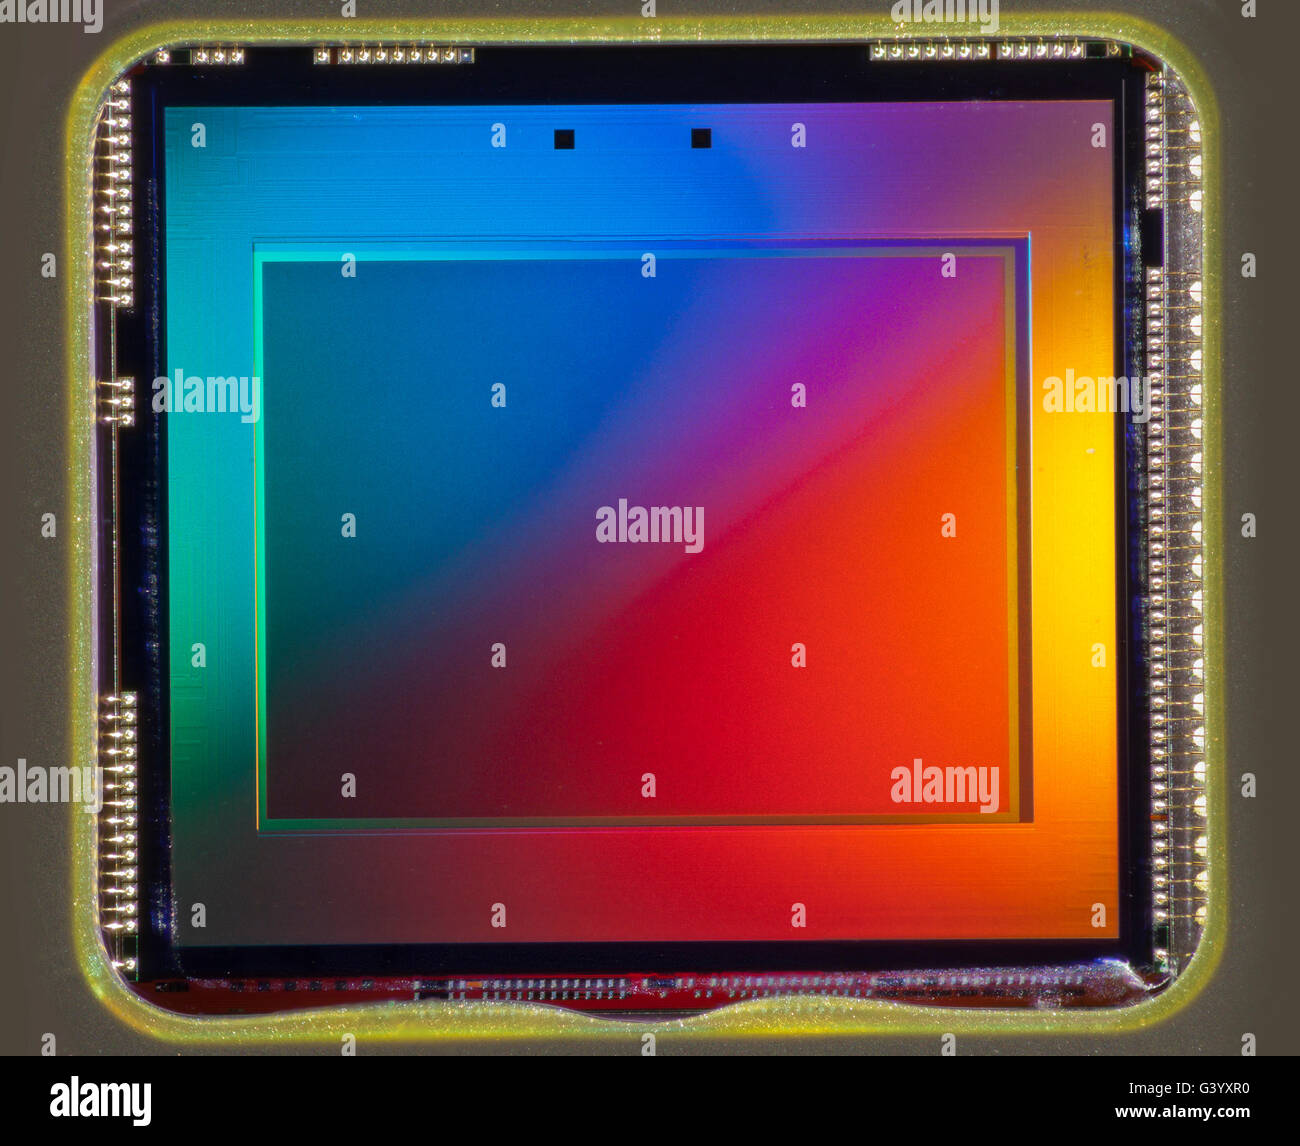 Tiny CCD imaging chip from an amateur consumer camera (approx 3mp) - Stock Image